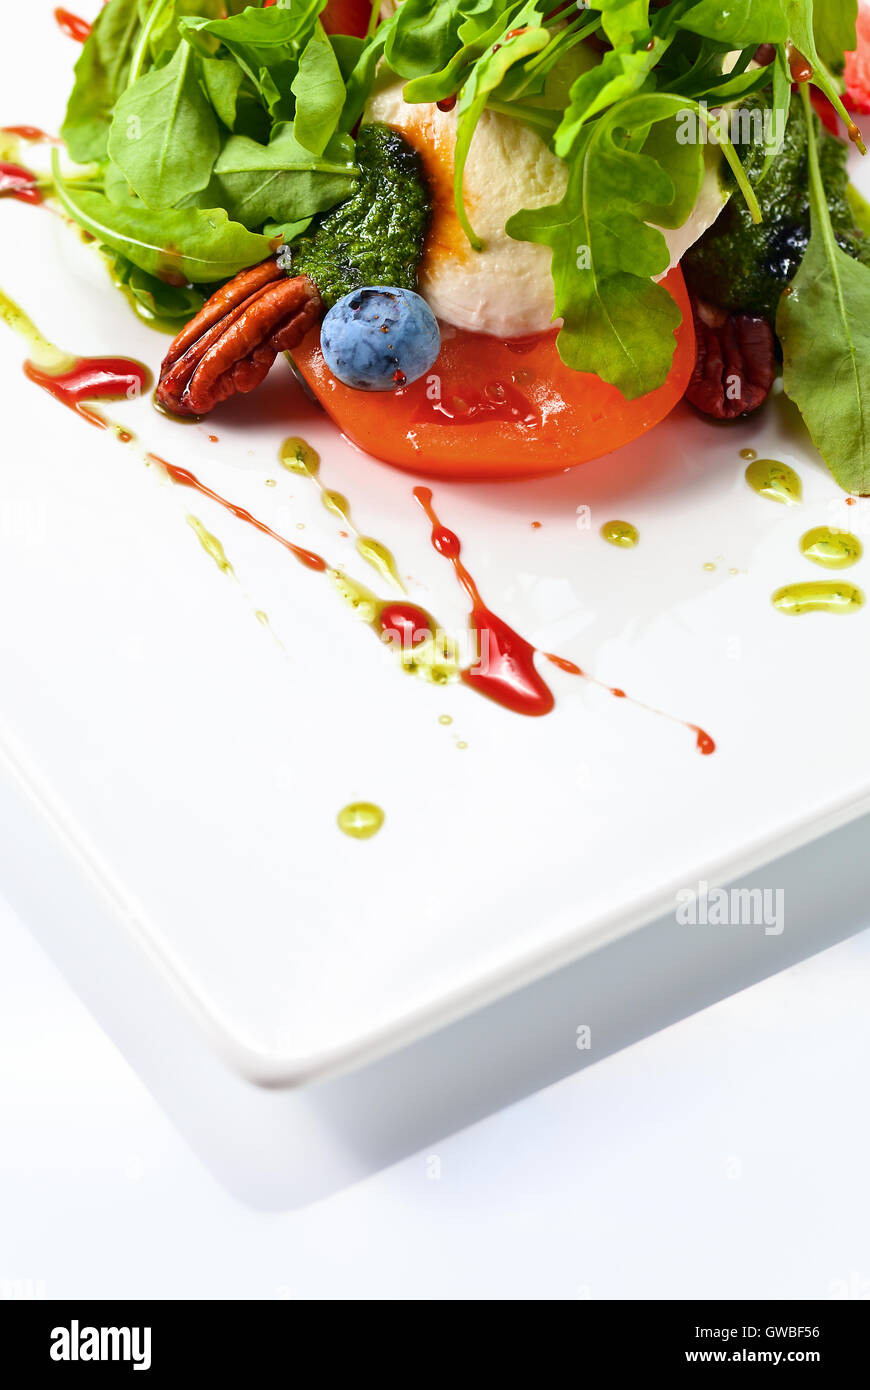 green salad with pesto sauce and berries - Stock Image